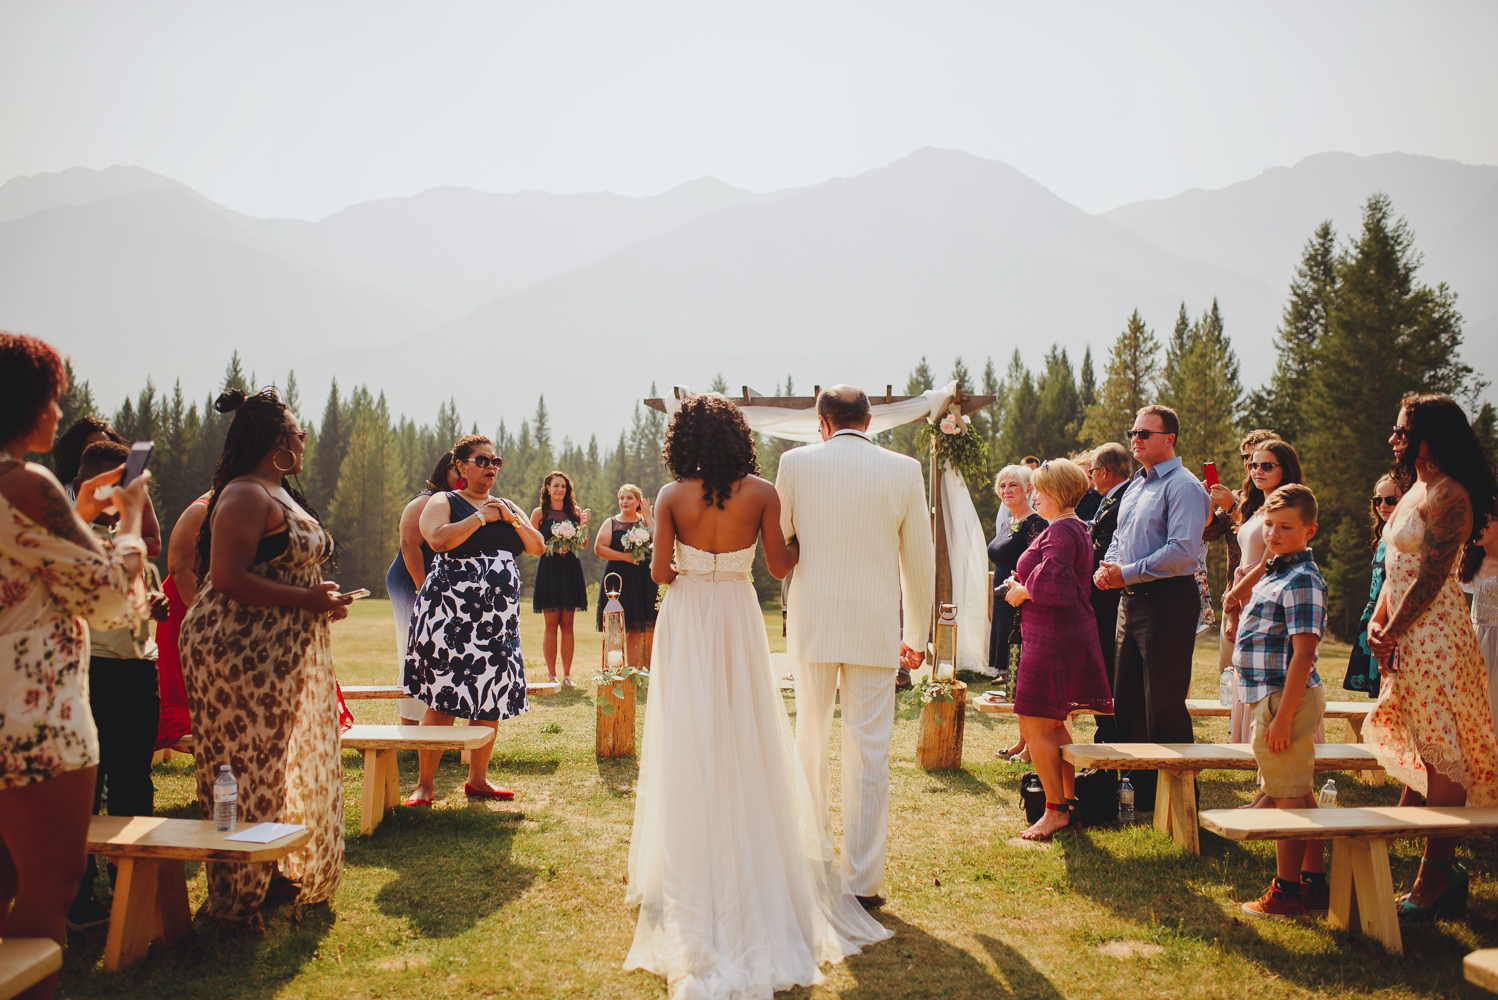 Kelowna-Wedding-Photographer-31.jpg